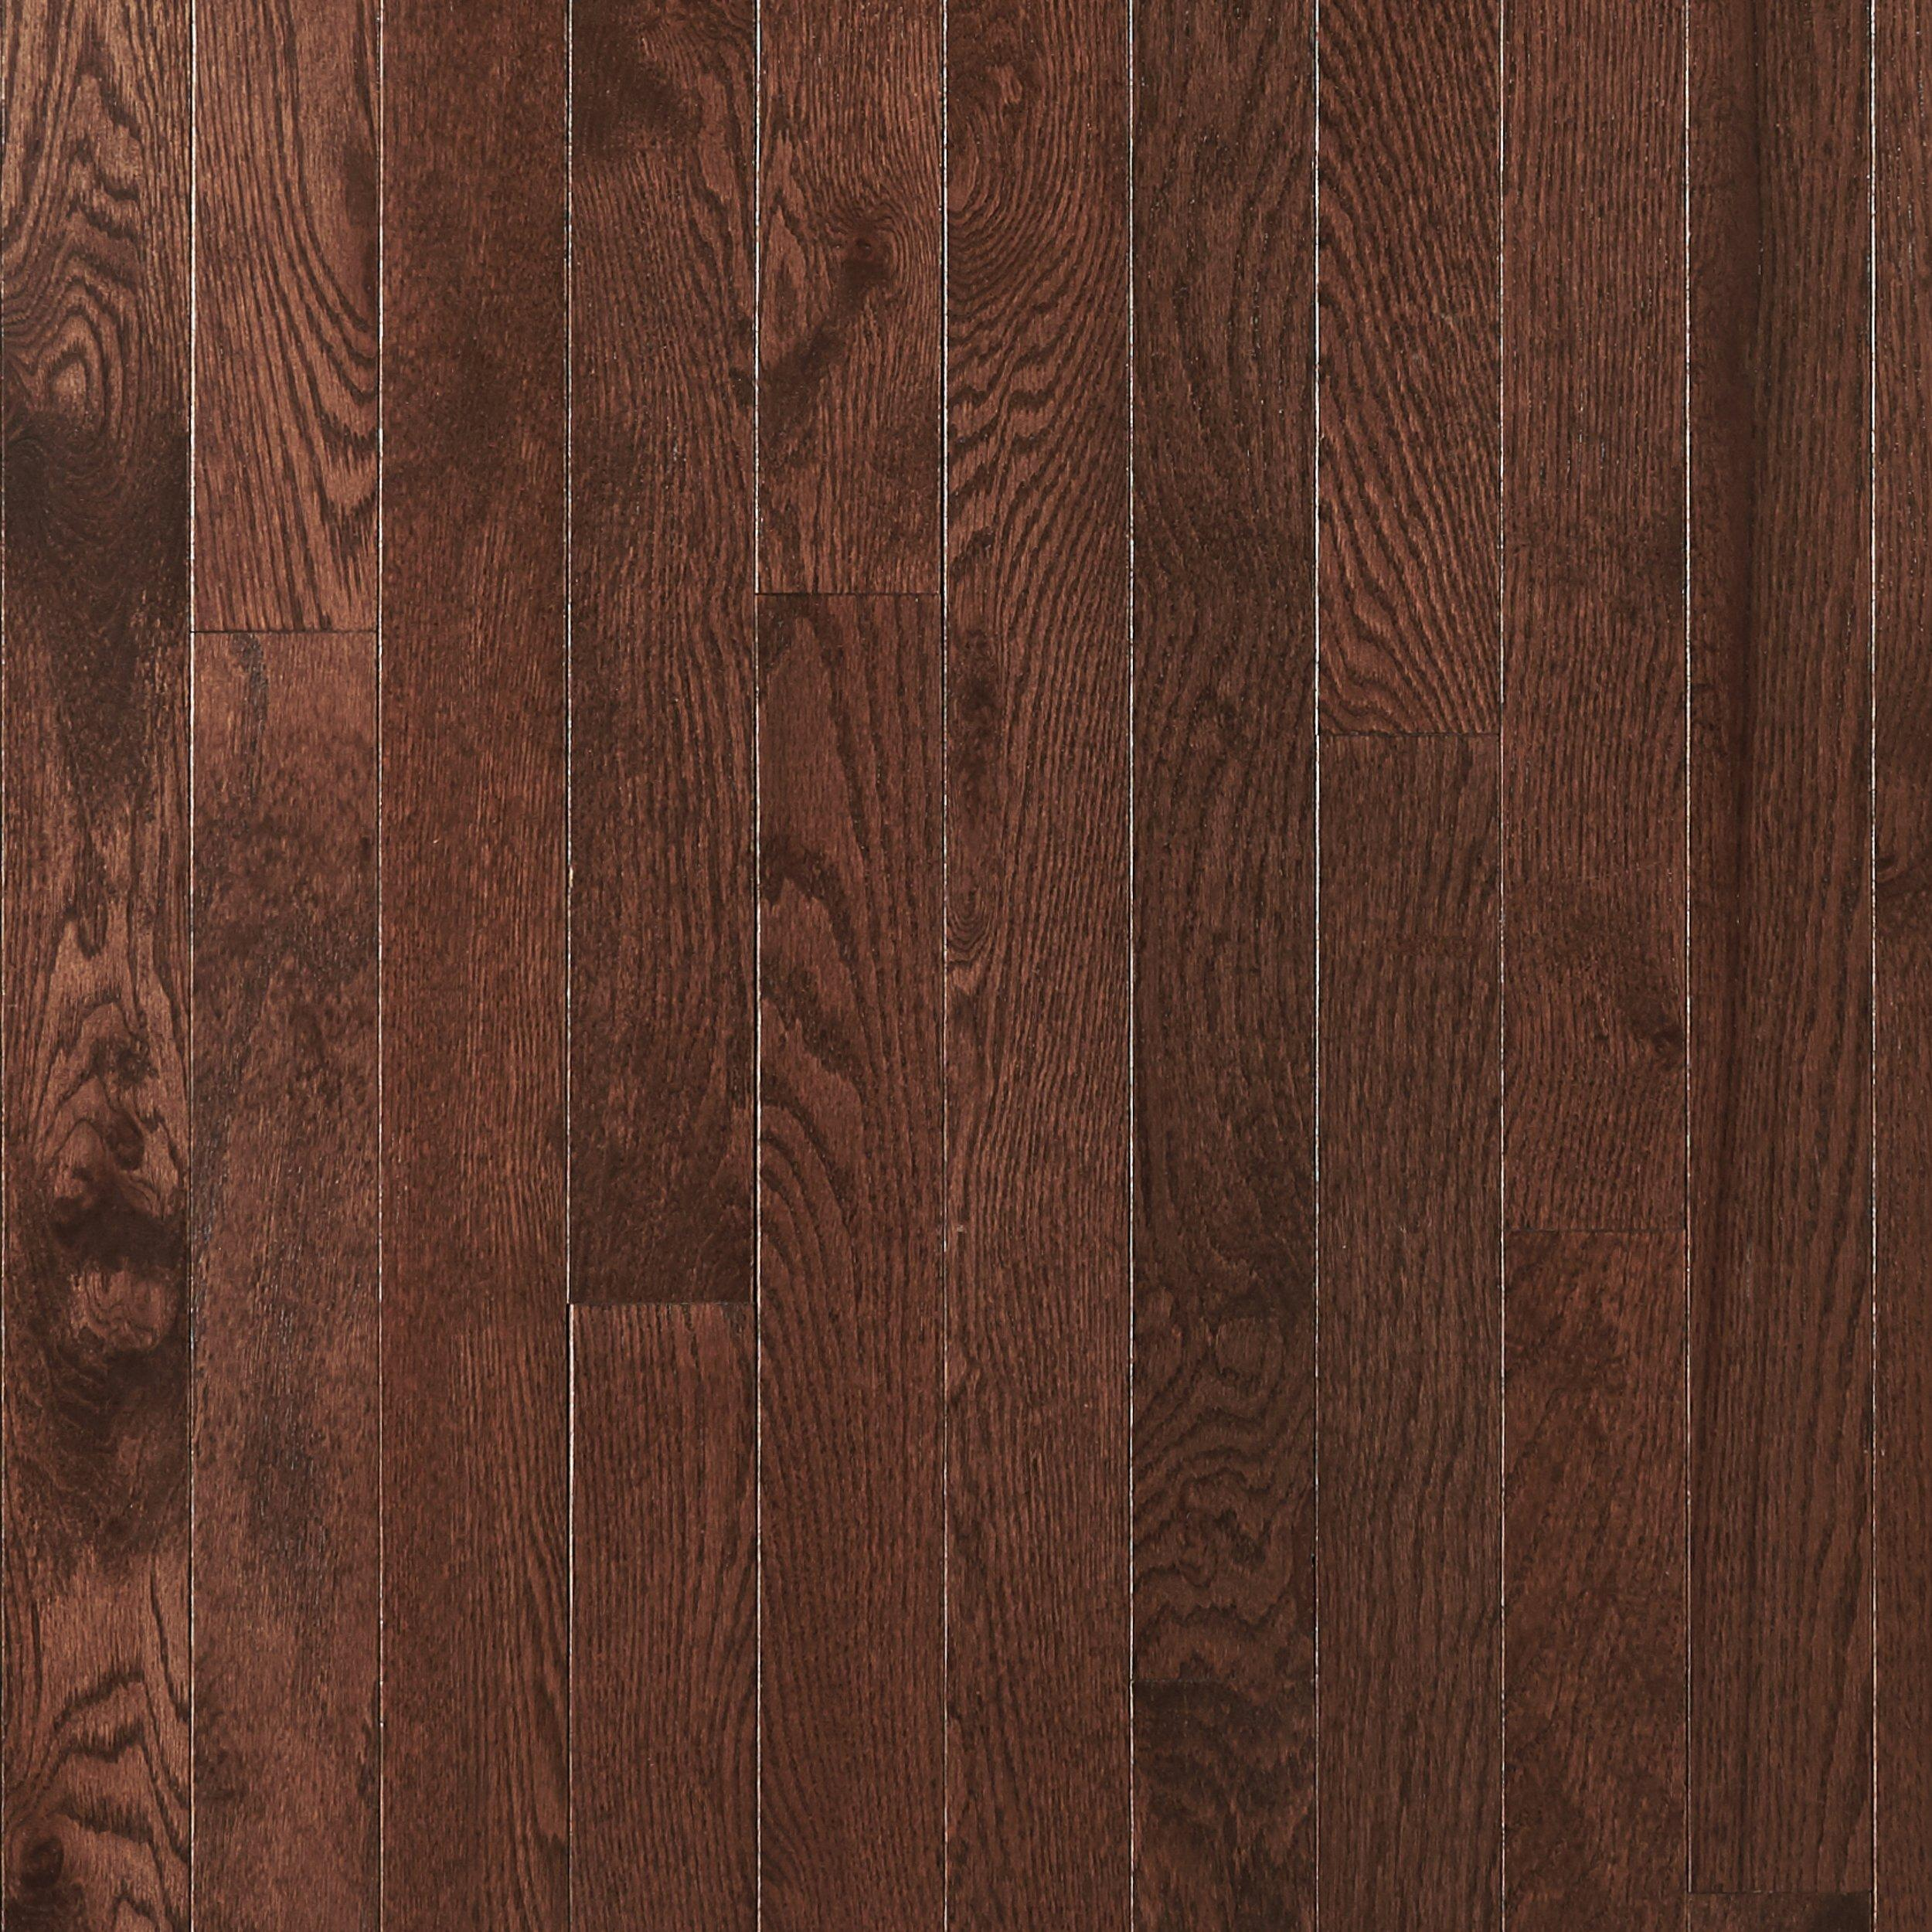 dark mocha oak smooth solid hardwood 34in x 3in floor and decor